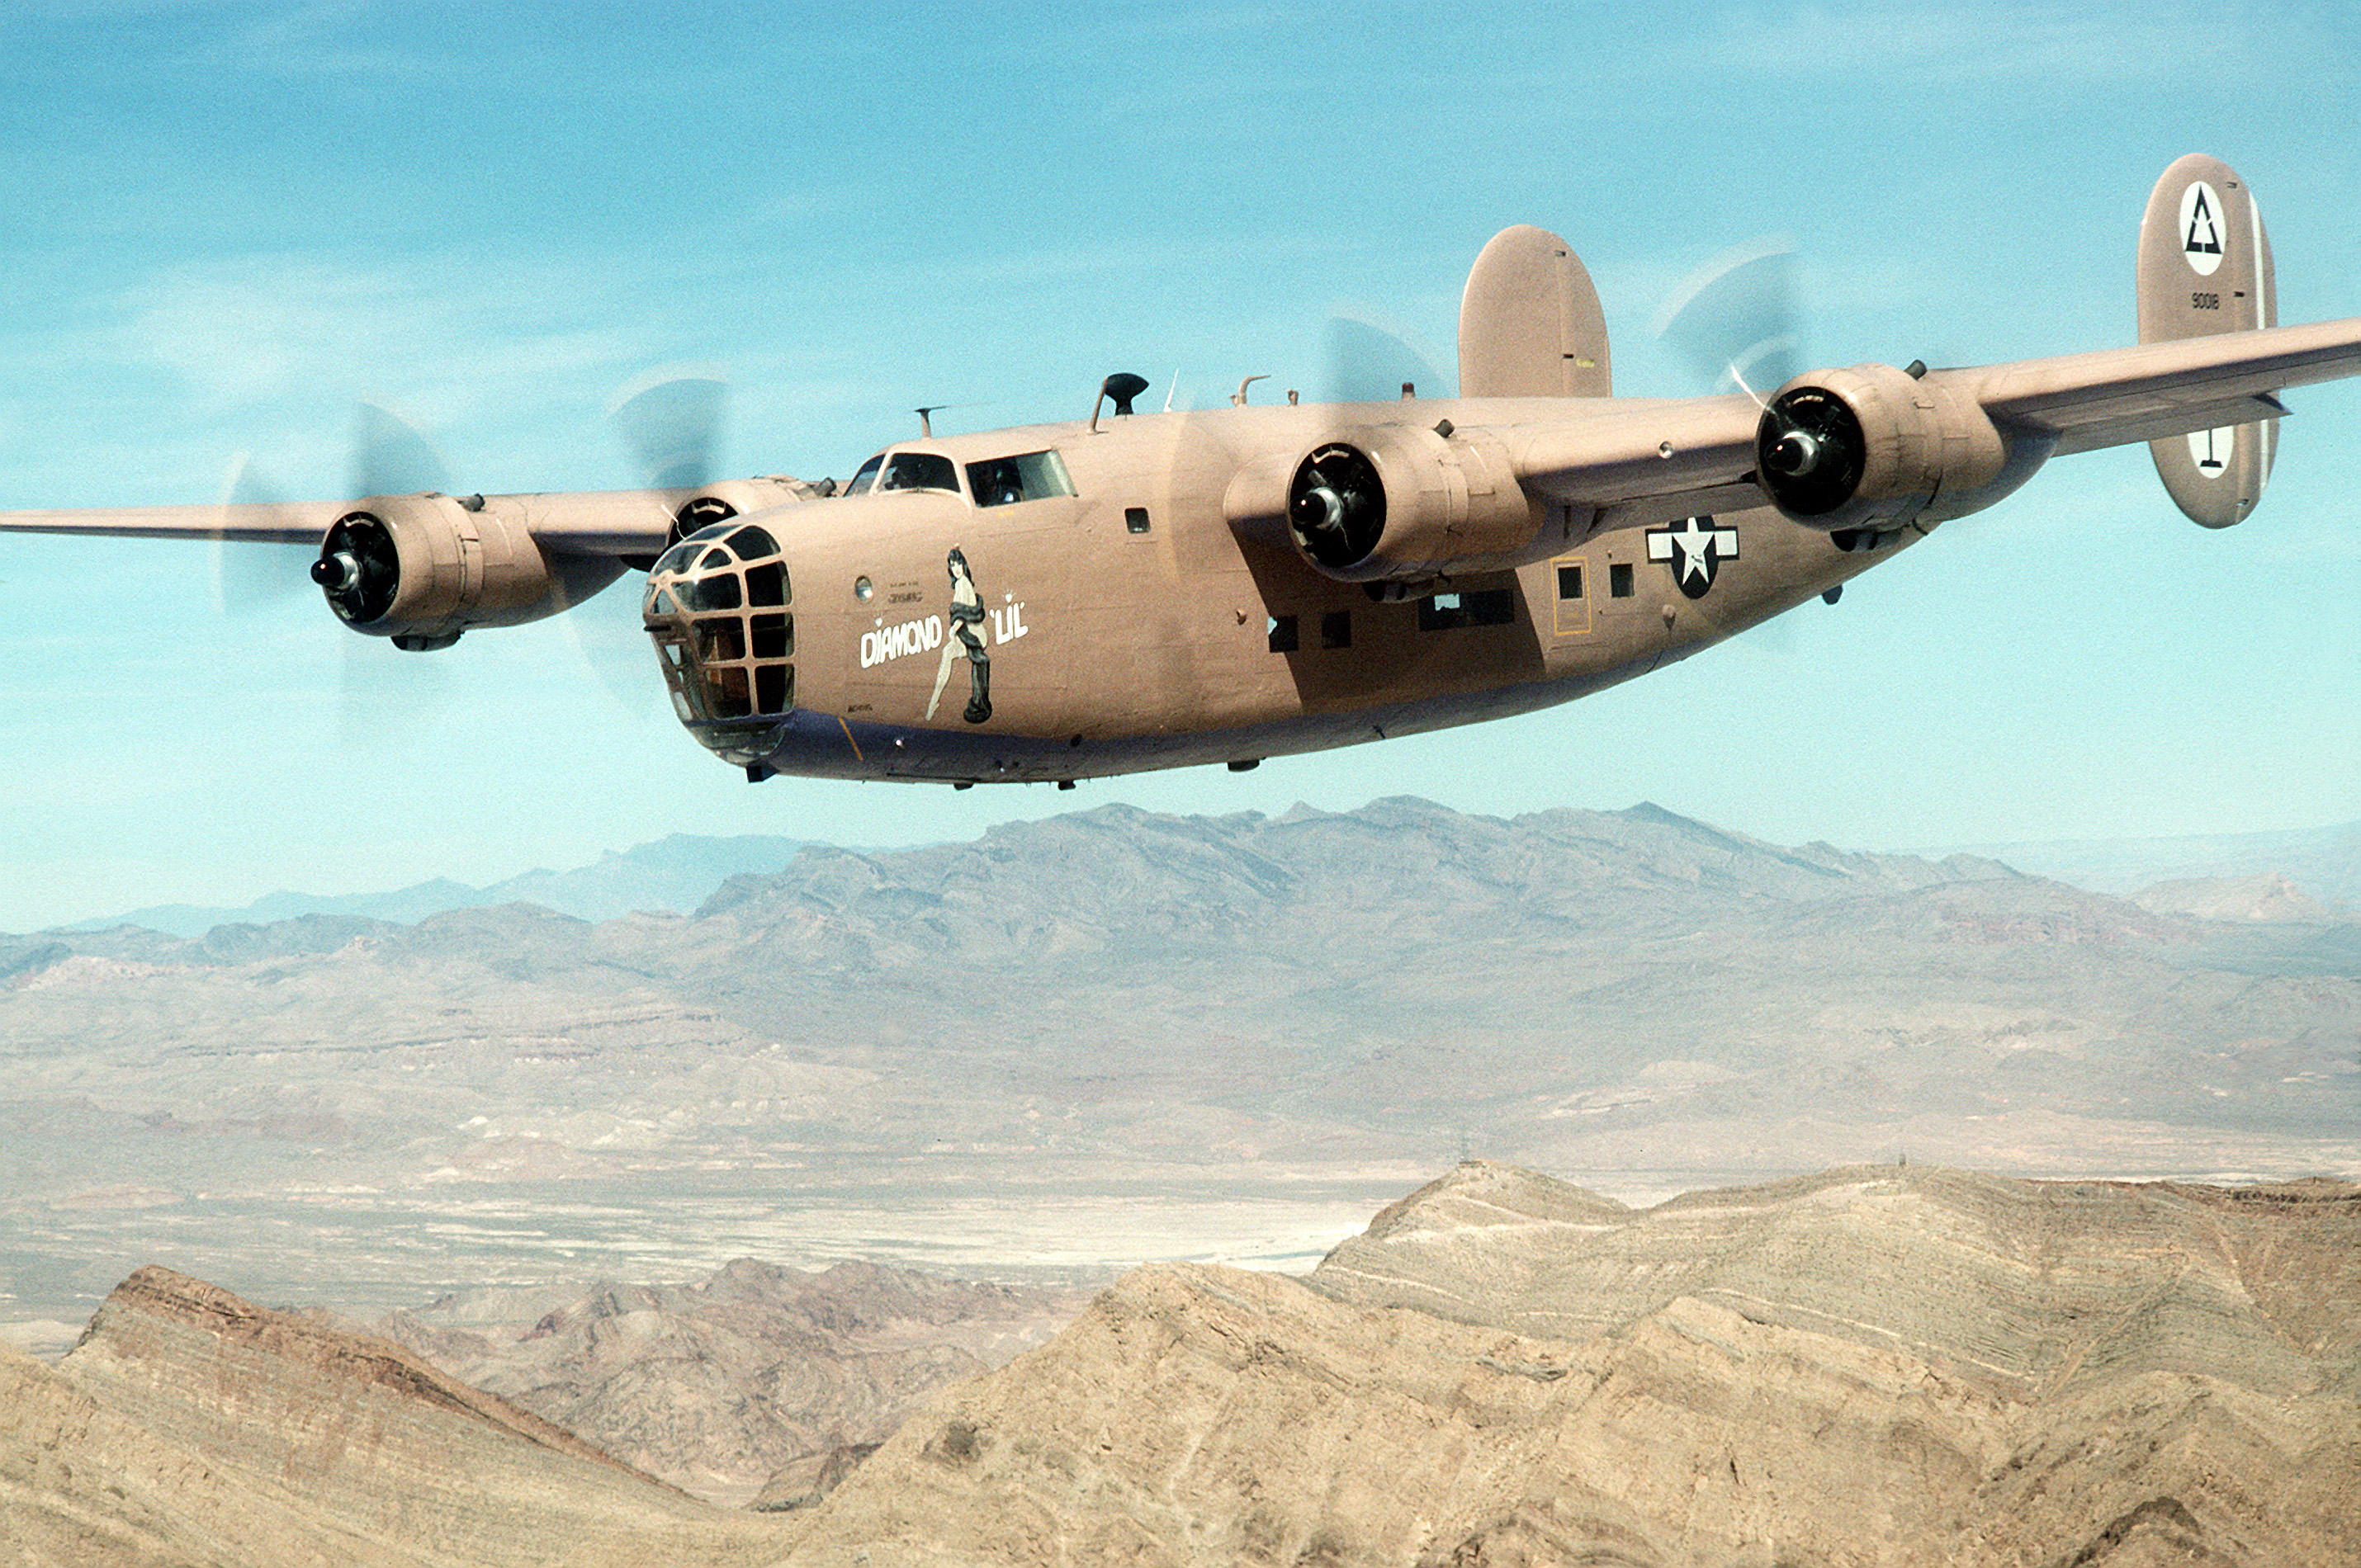 2860x1900 - Consolidated B-24 Liberator Wallpapers 28